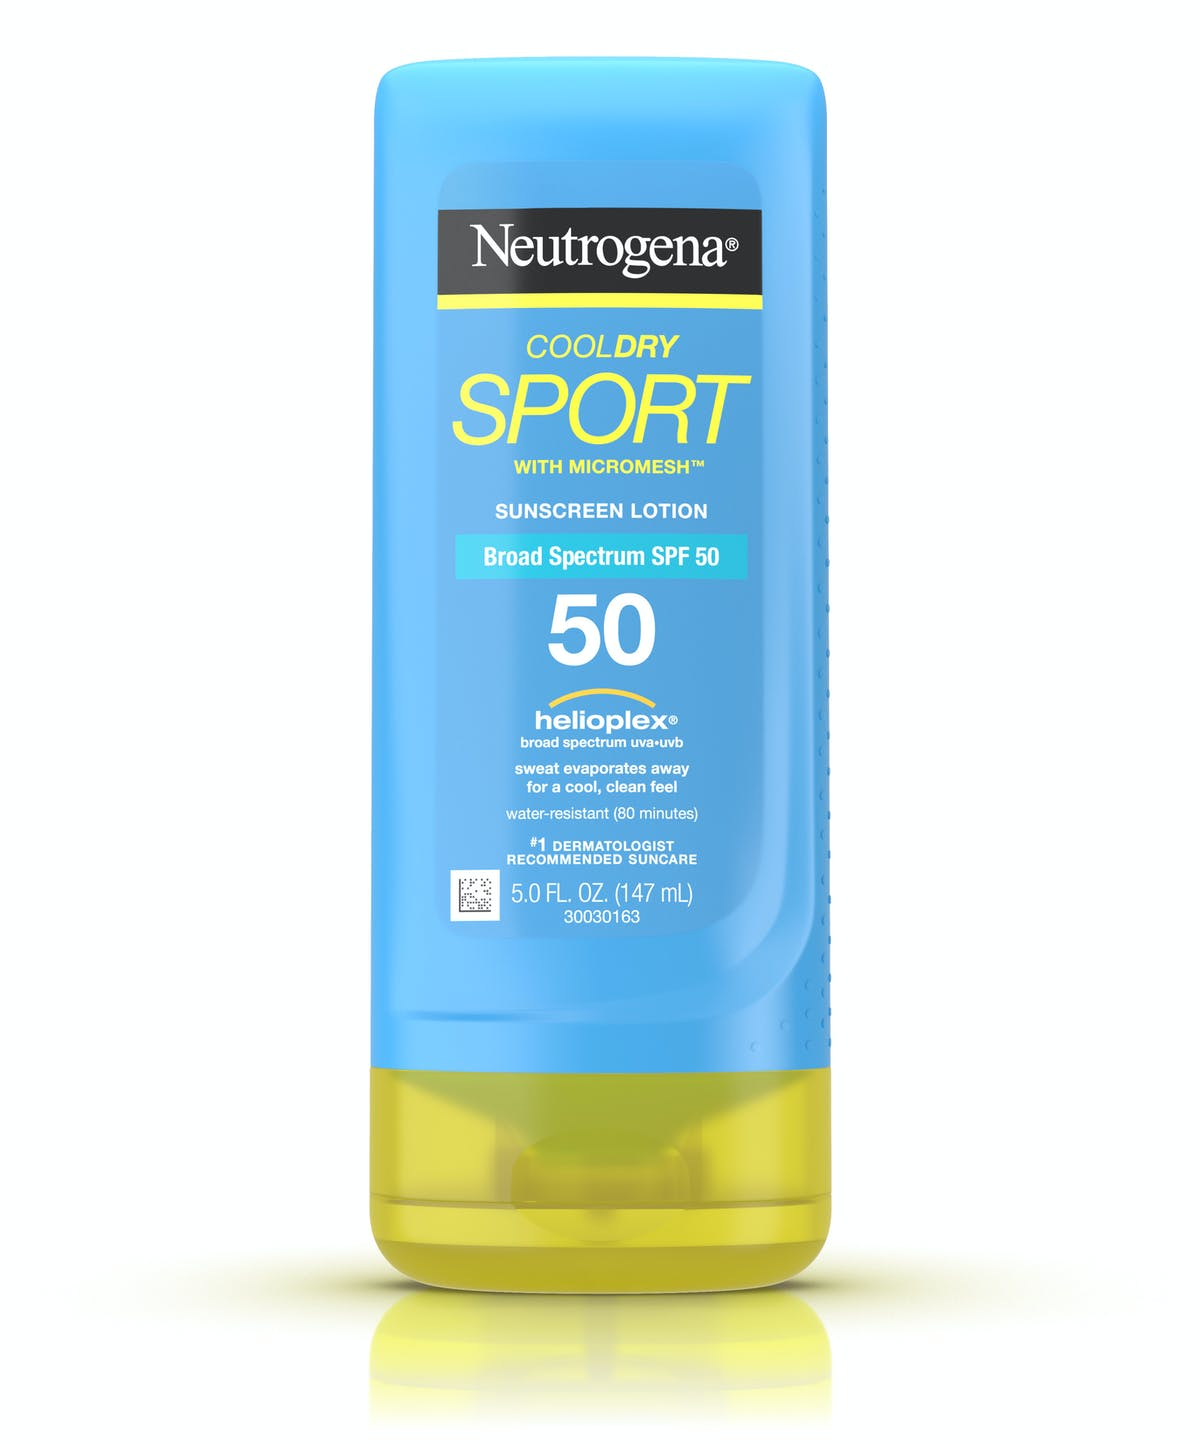 7253eefa5 CoolDry Sport Sunscreen Lotion Broad Spectrum SPF 50 | Neutrogena®